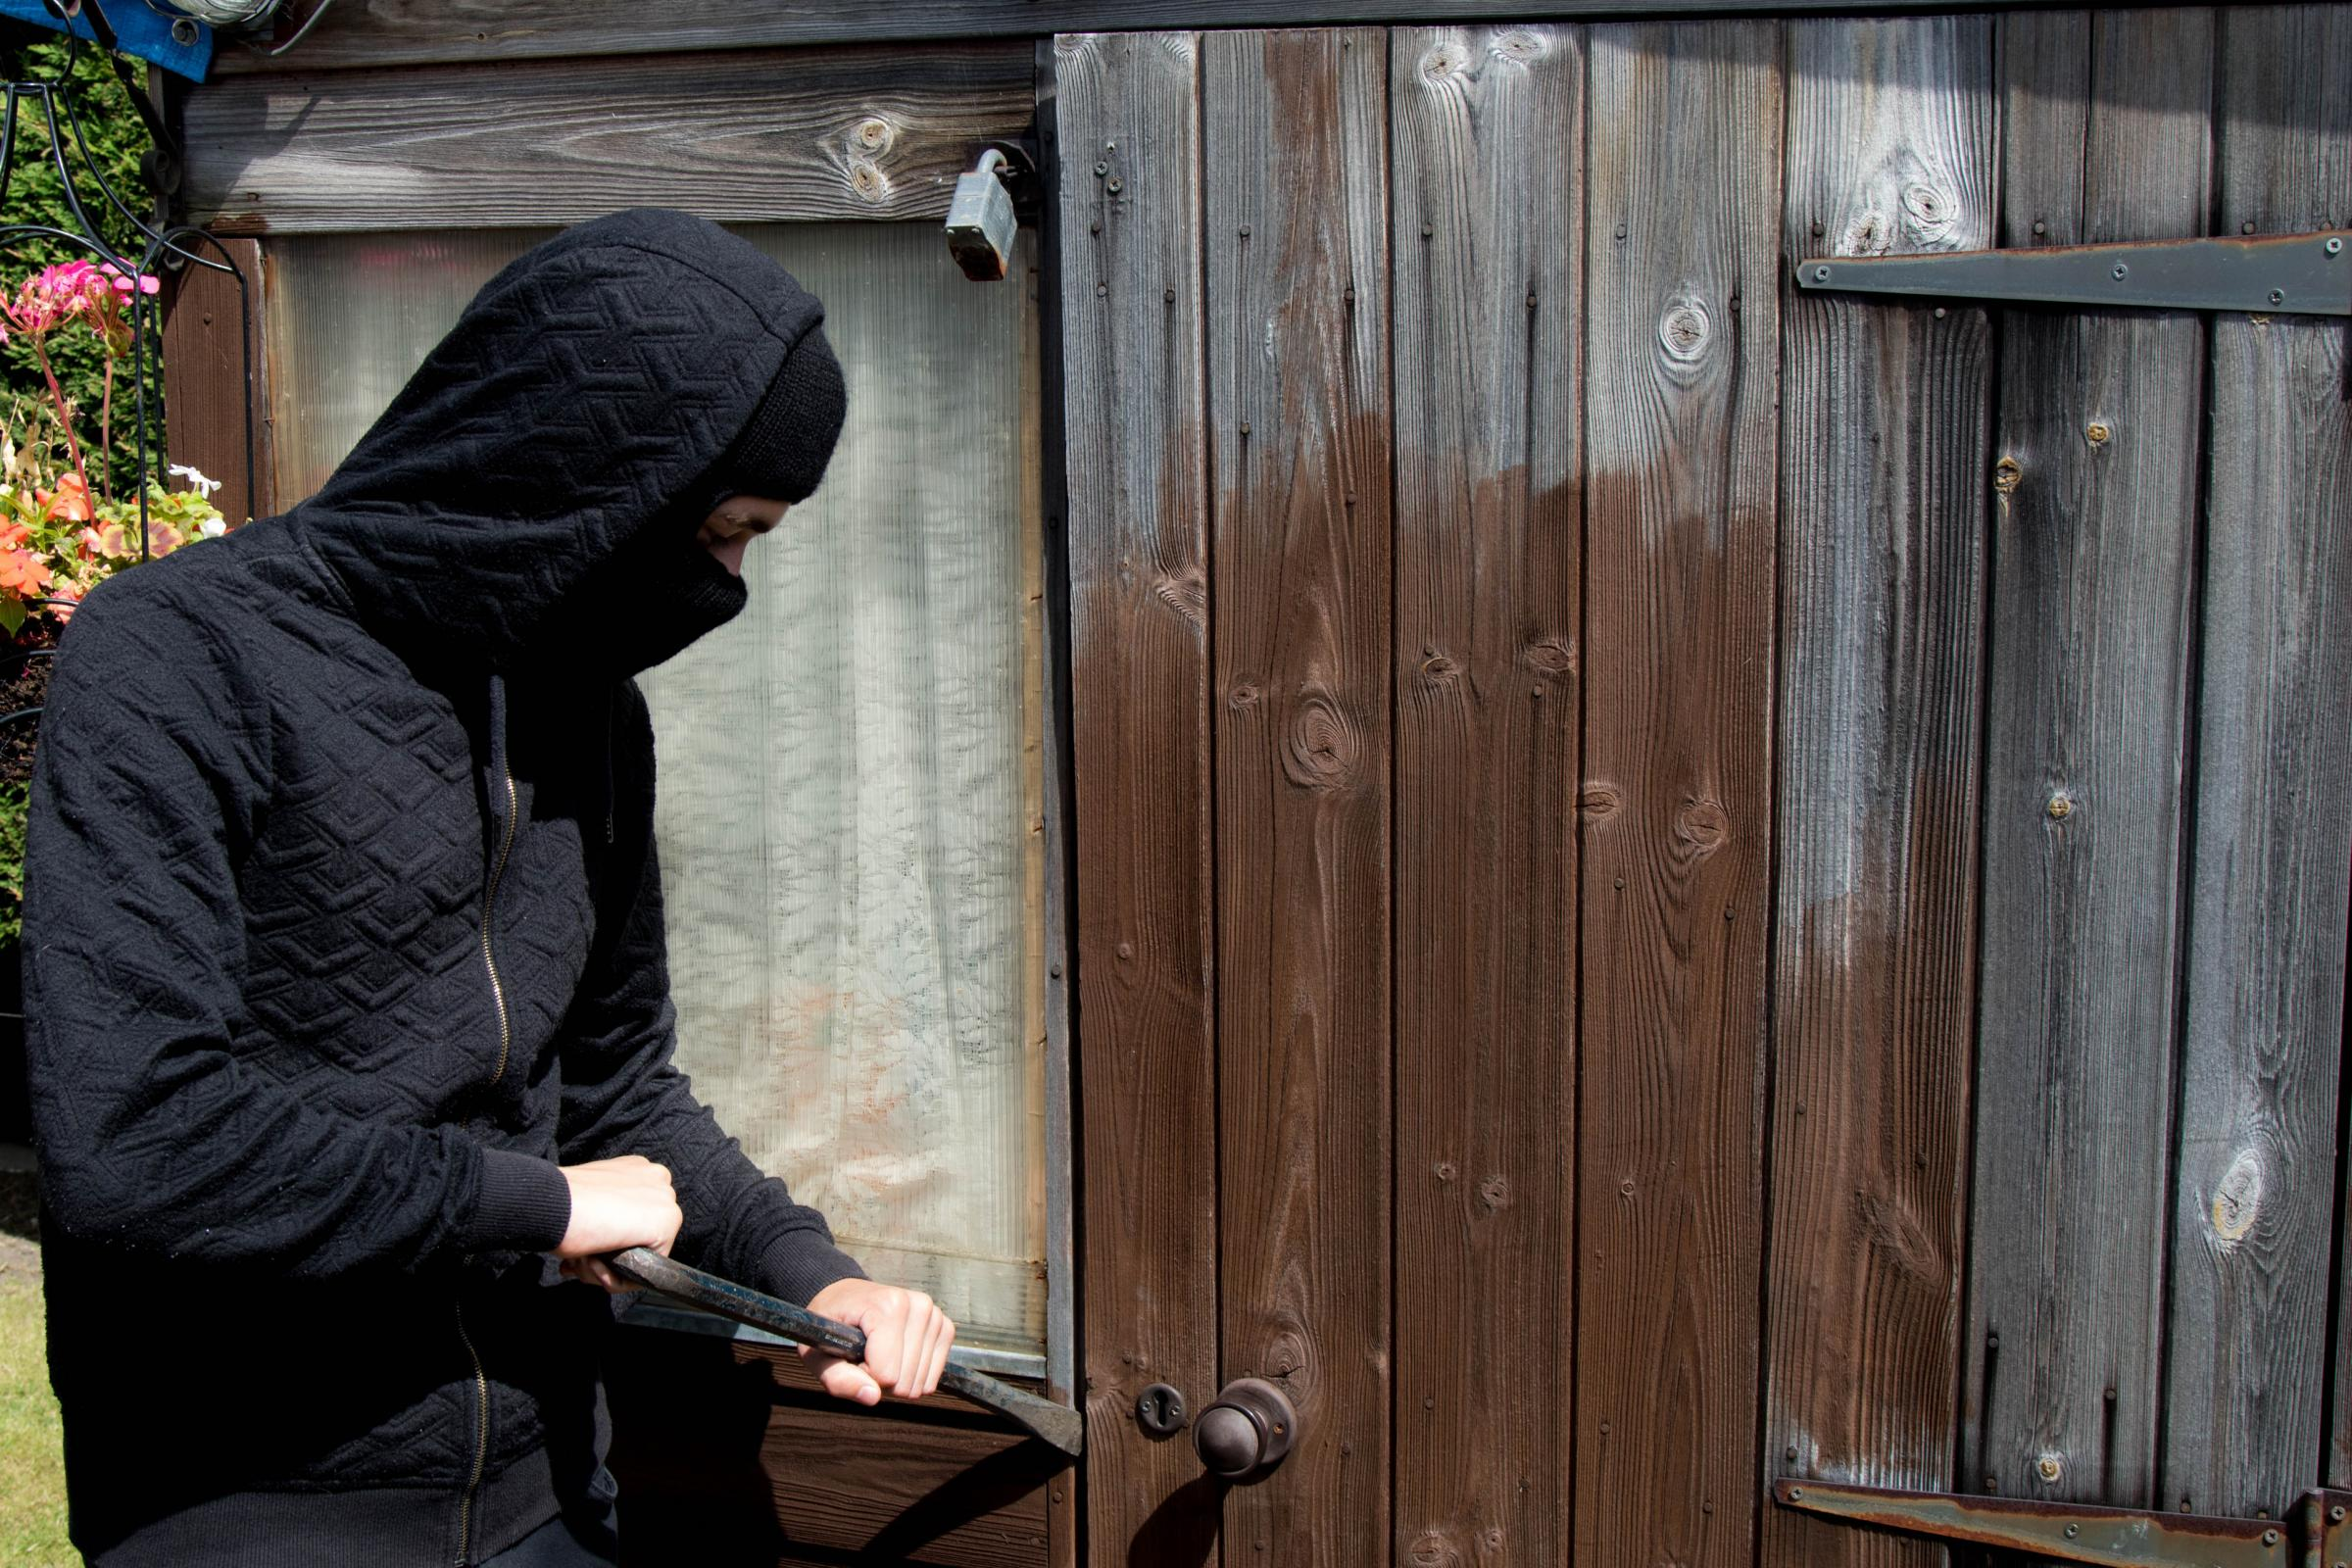 A spate of shed thefts hit a Kingswinford street last weekend.